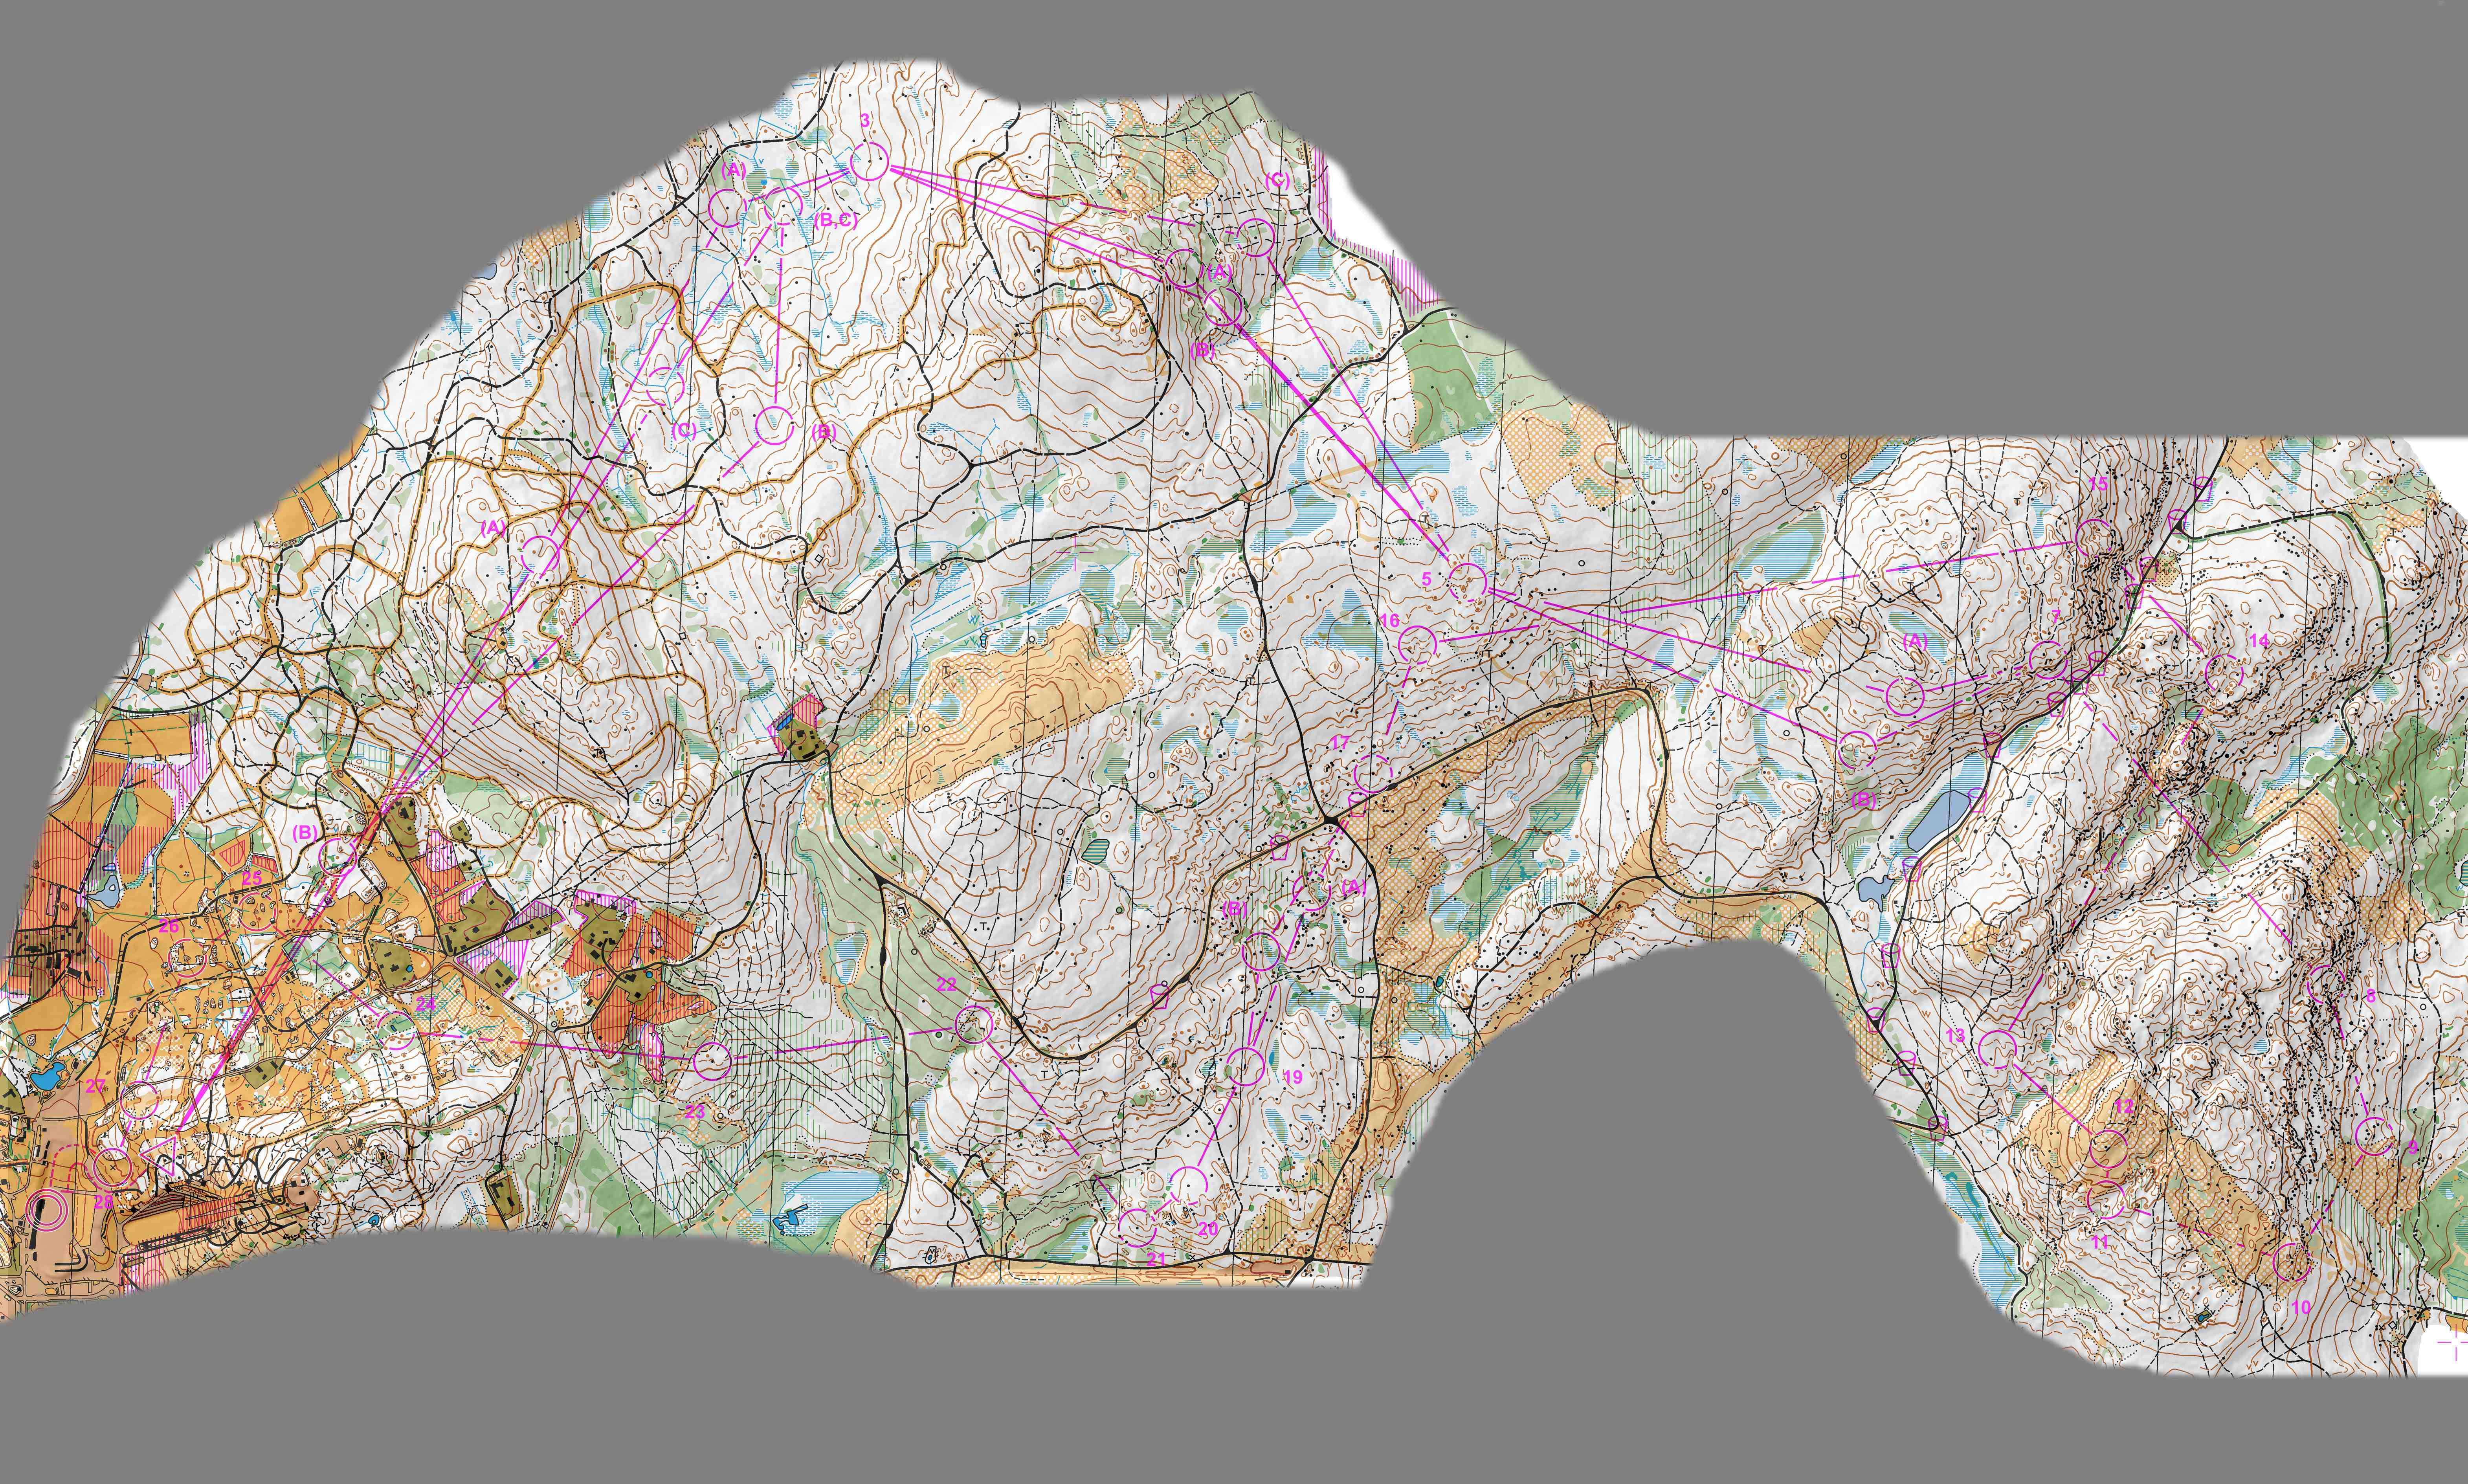 10mila 2016 herrar leg 10 may 14th 2016 orienteering map request map deleted gumiabroncs Image collections